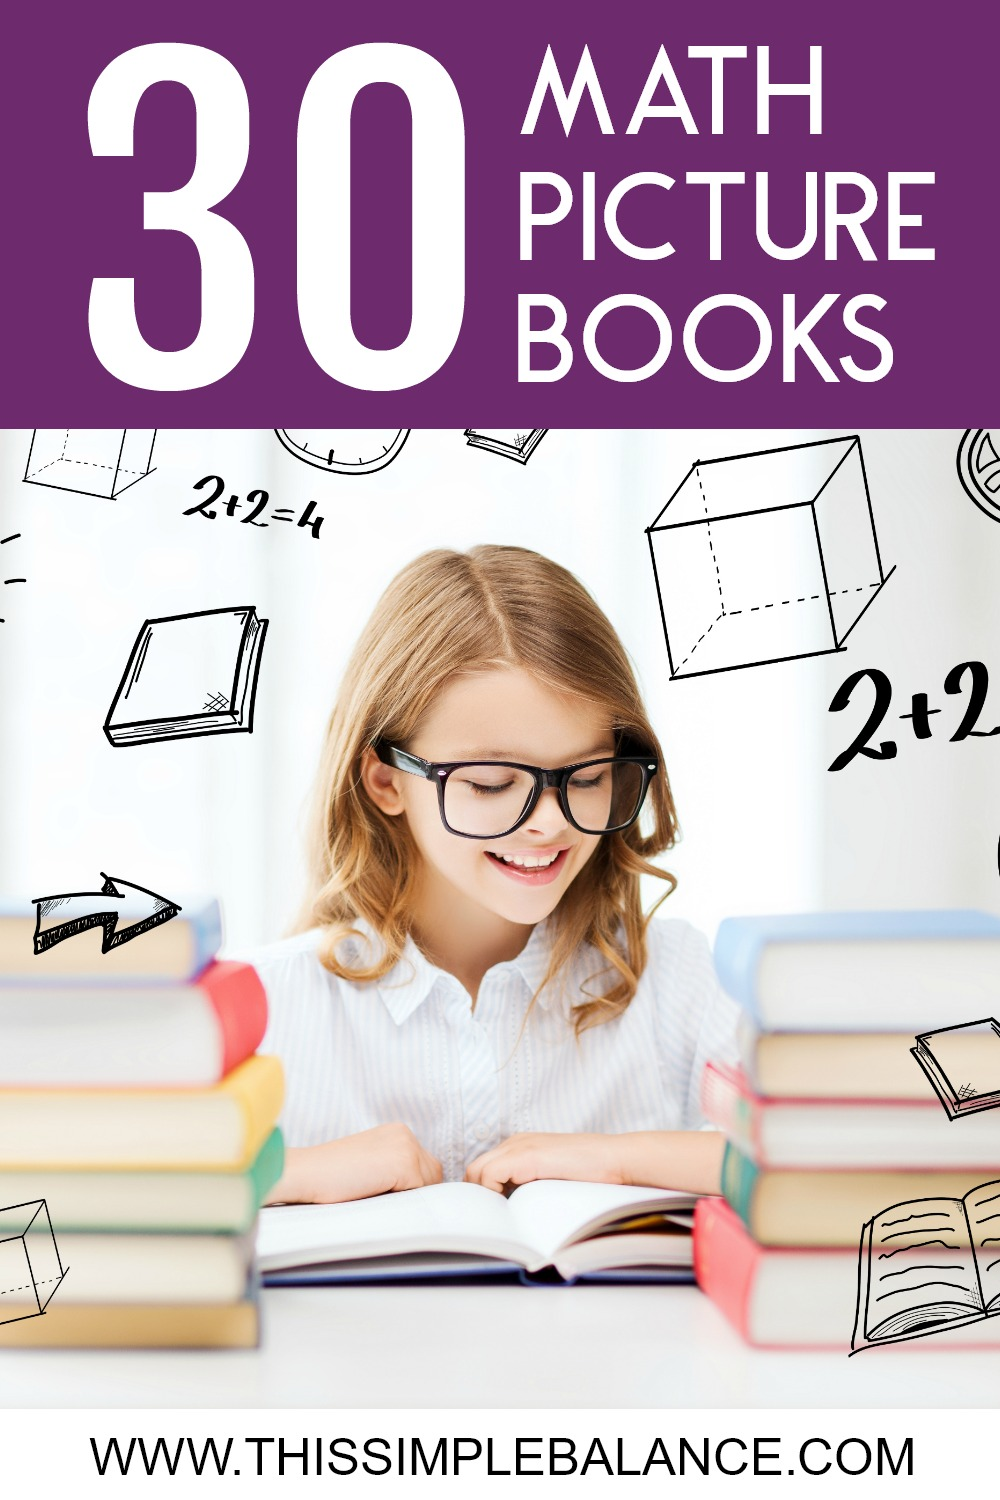 30 Math Books for Kids: Learn why you should use picture books as part of your homeschool math curriculum and get a list of 30 books to get your started (the math concept each book covers is listed).